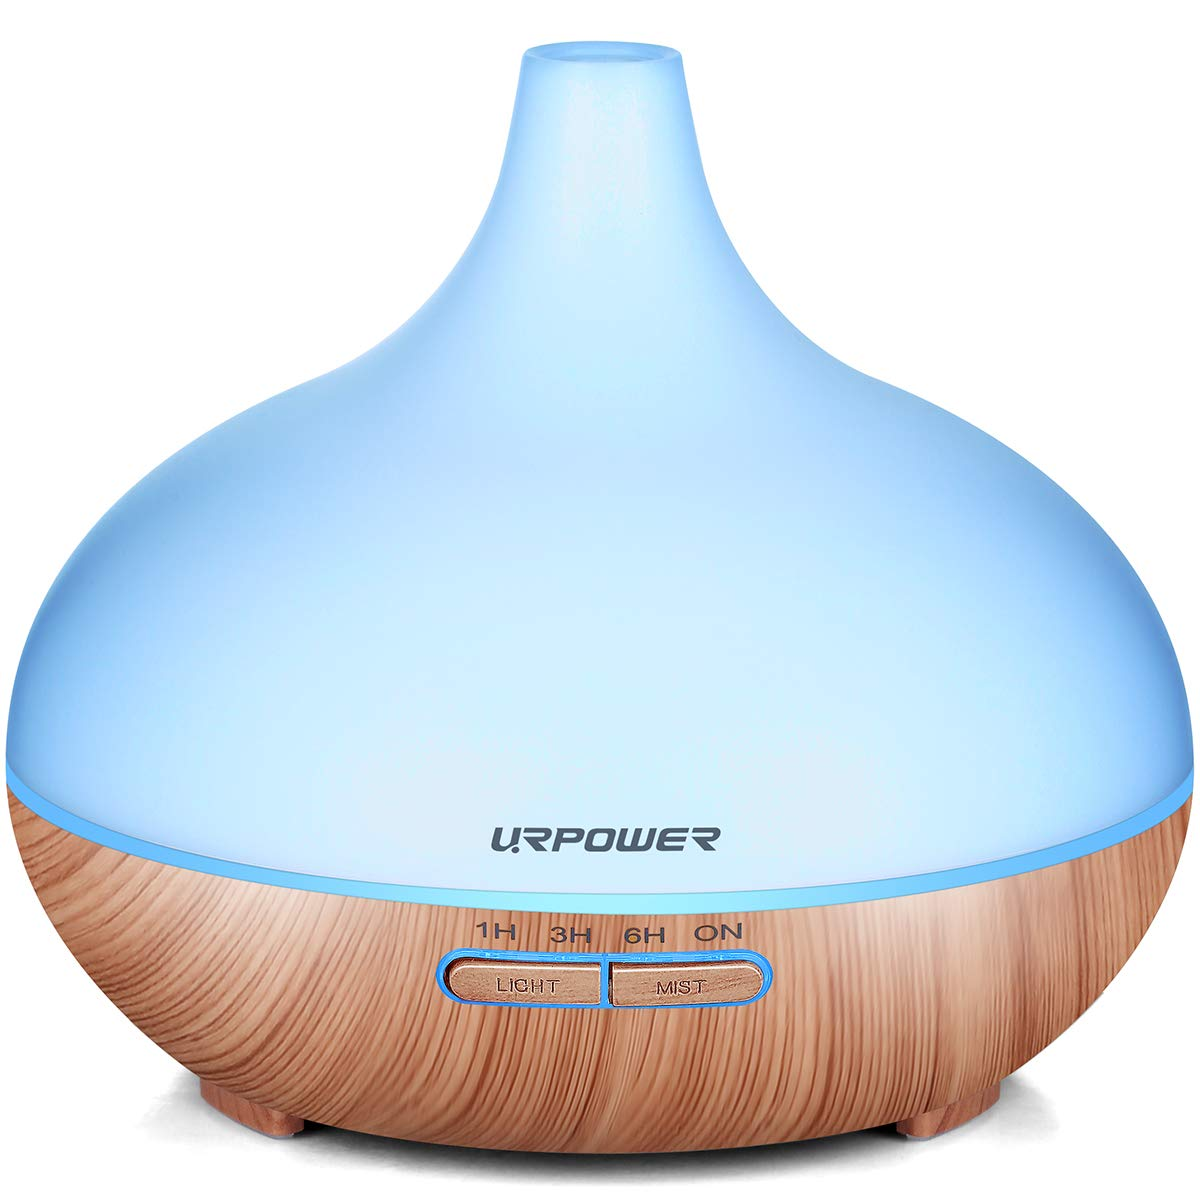 Aromatherapy Essential Oil Diffuser, URPOWER 300ml Wood Grain Ultrasonic Cool Mist Whisper-Quiet Humidifier with Color LED Lights Changing & 4 Timer Settings, Waterless Auto Shut-Off for Spa Baby by URPOWER